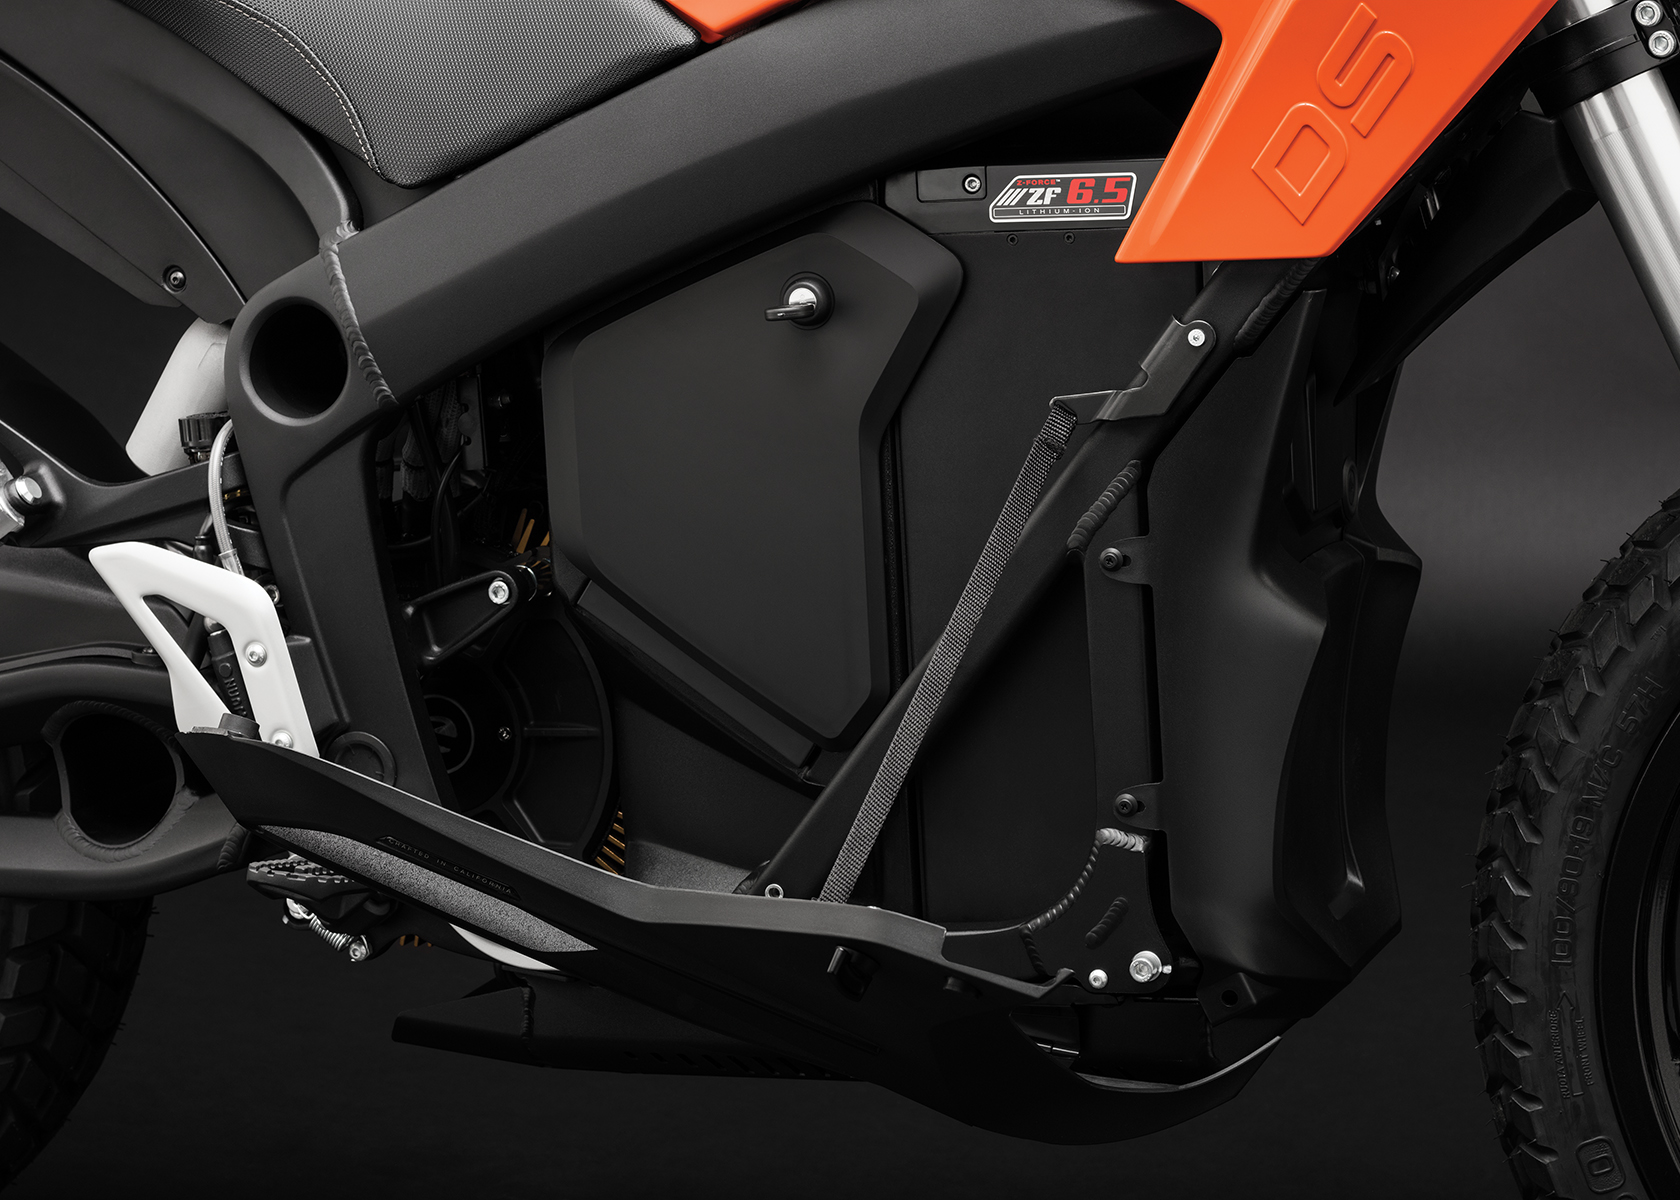 2017 Zero DS Electric Motorcycle: Storage Closed